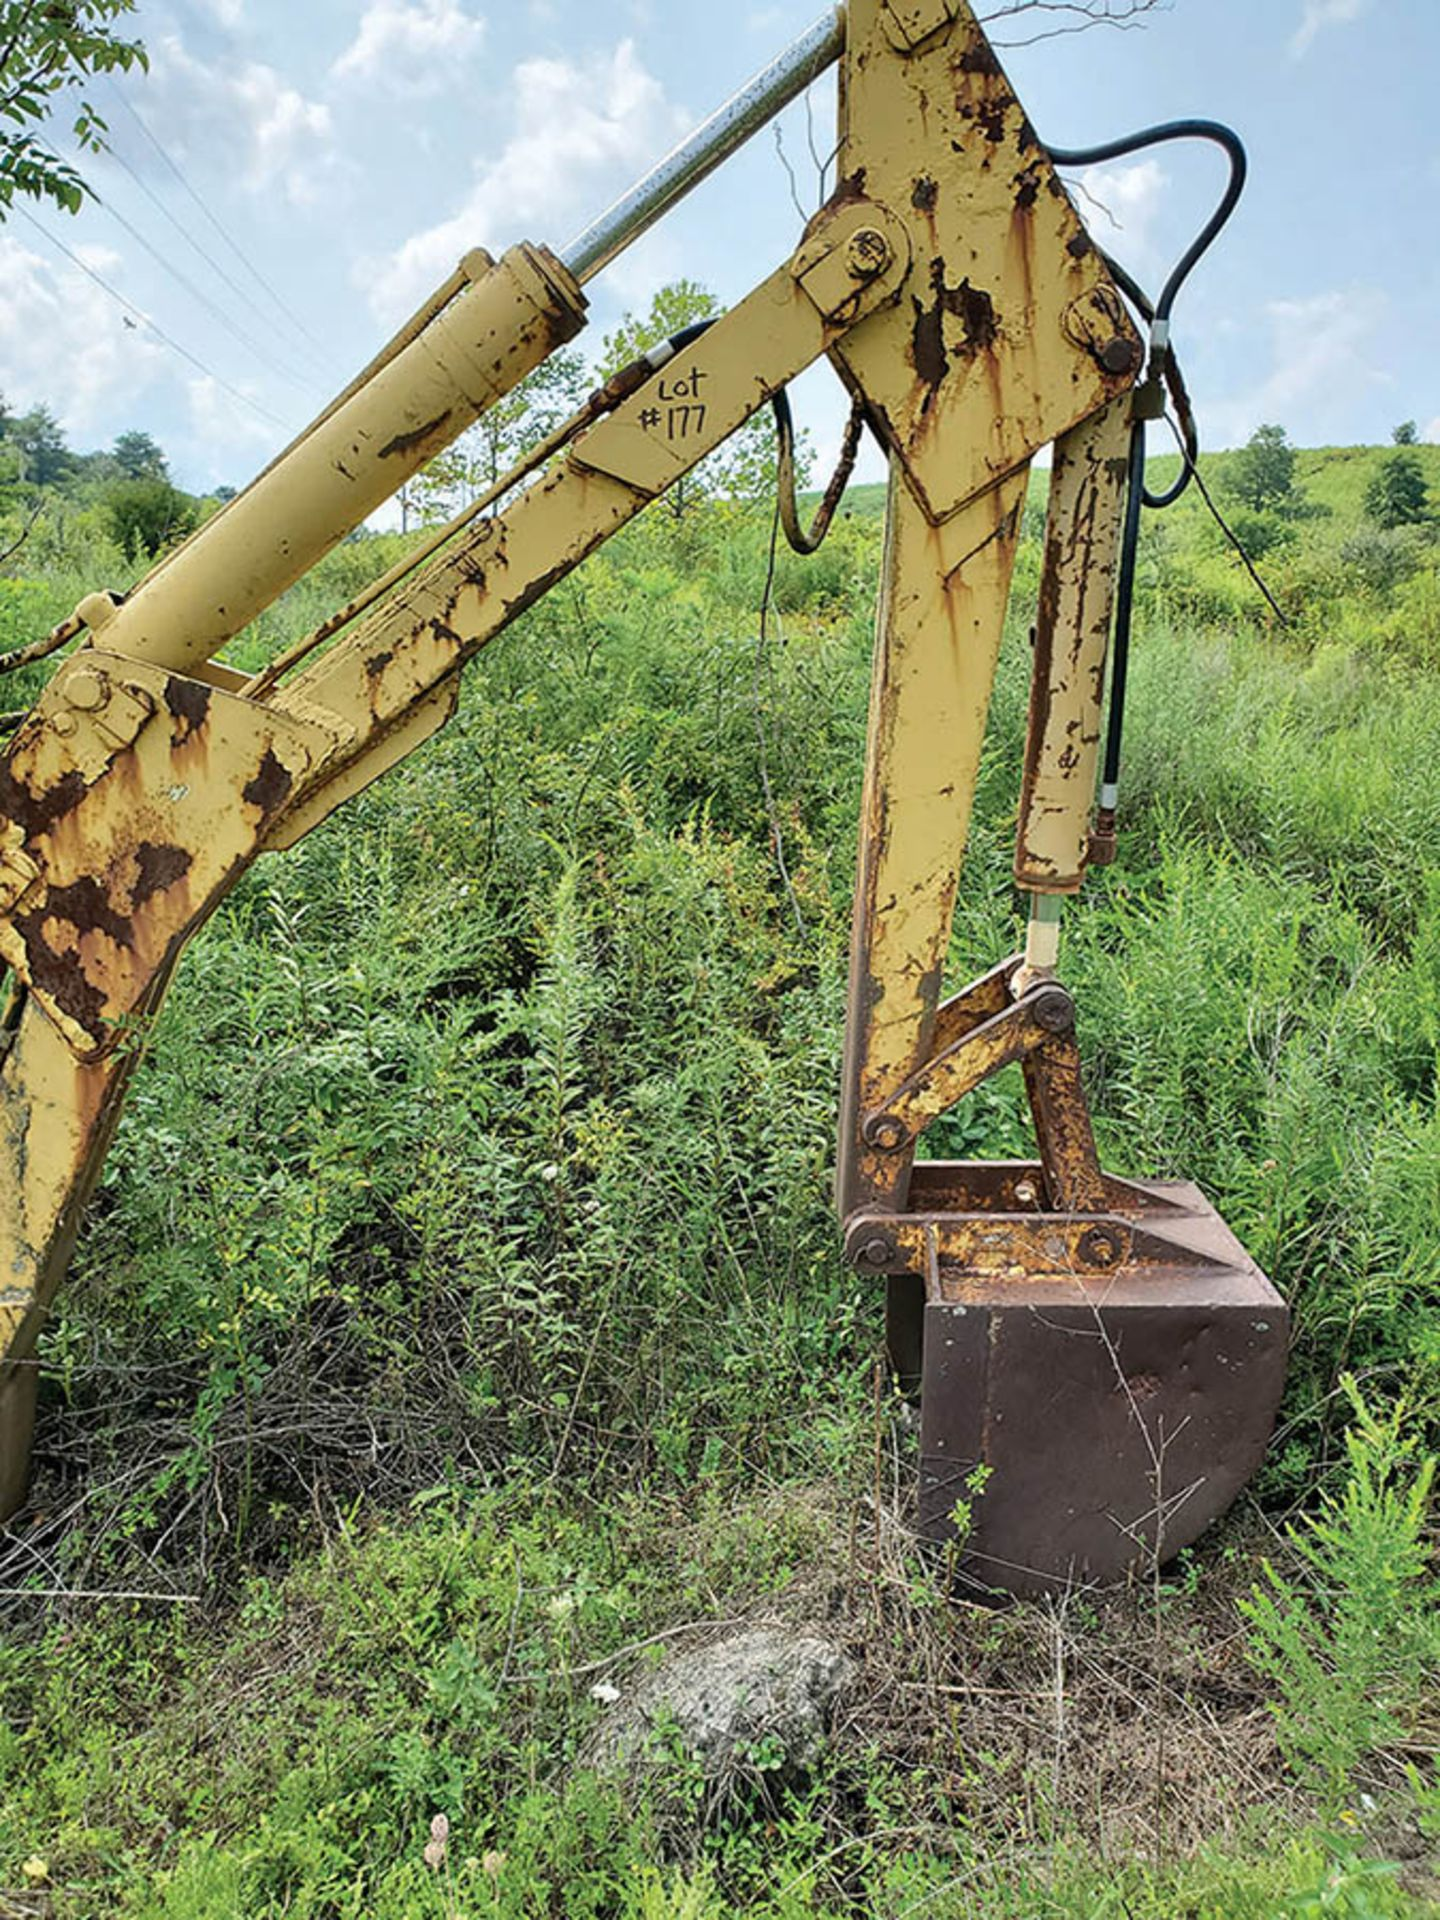 Lot 177 - WARE HYDRO TRENCHER BACKHOE ARM, LOCATION: PINNACLE SHOP